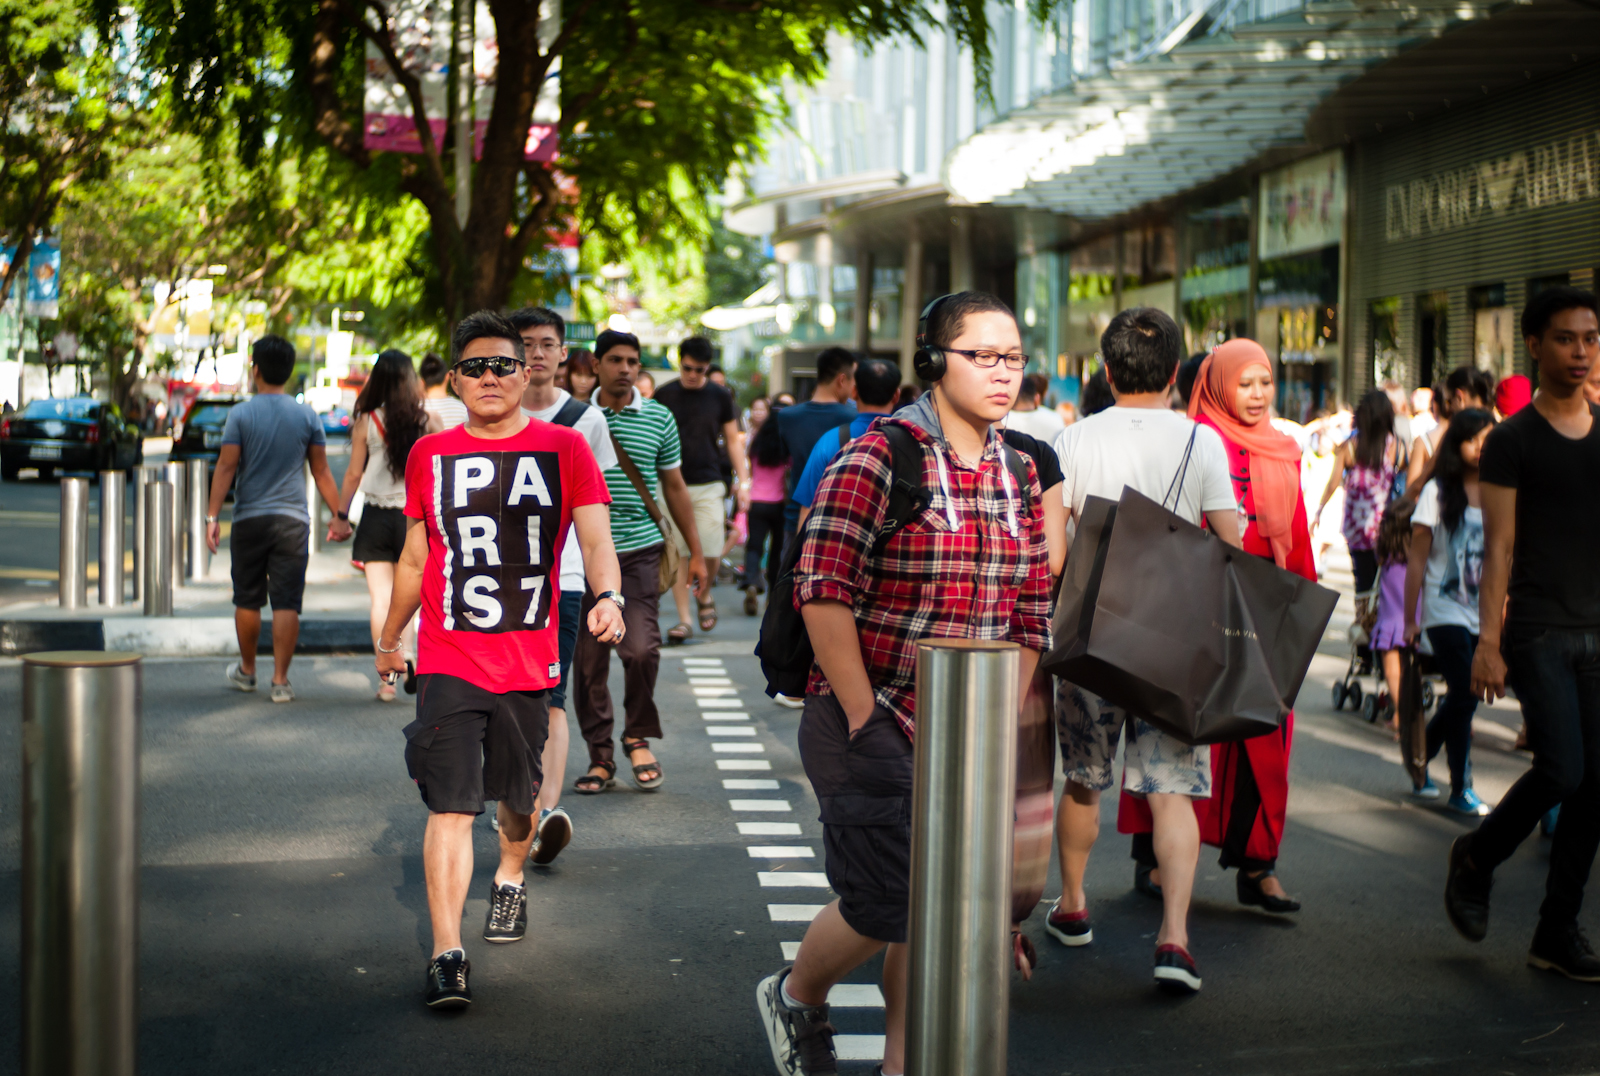 People crossing the street in Orchard Road